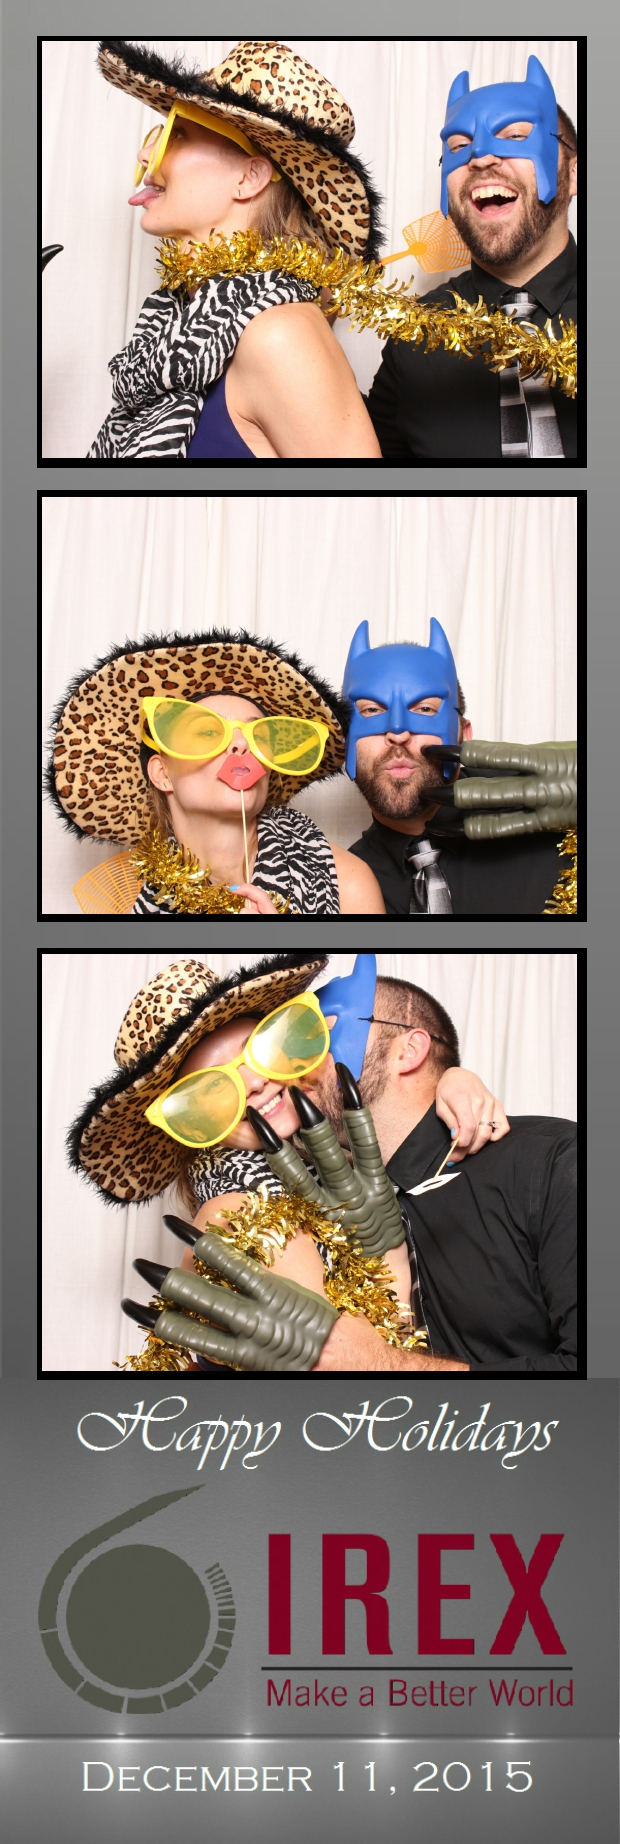 Guest House Events Photo Booth Strips IREX (55).jpg